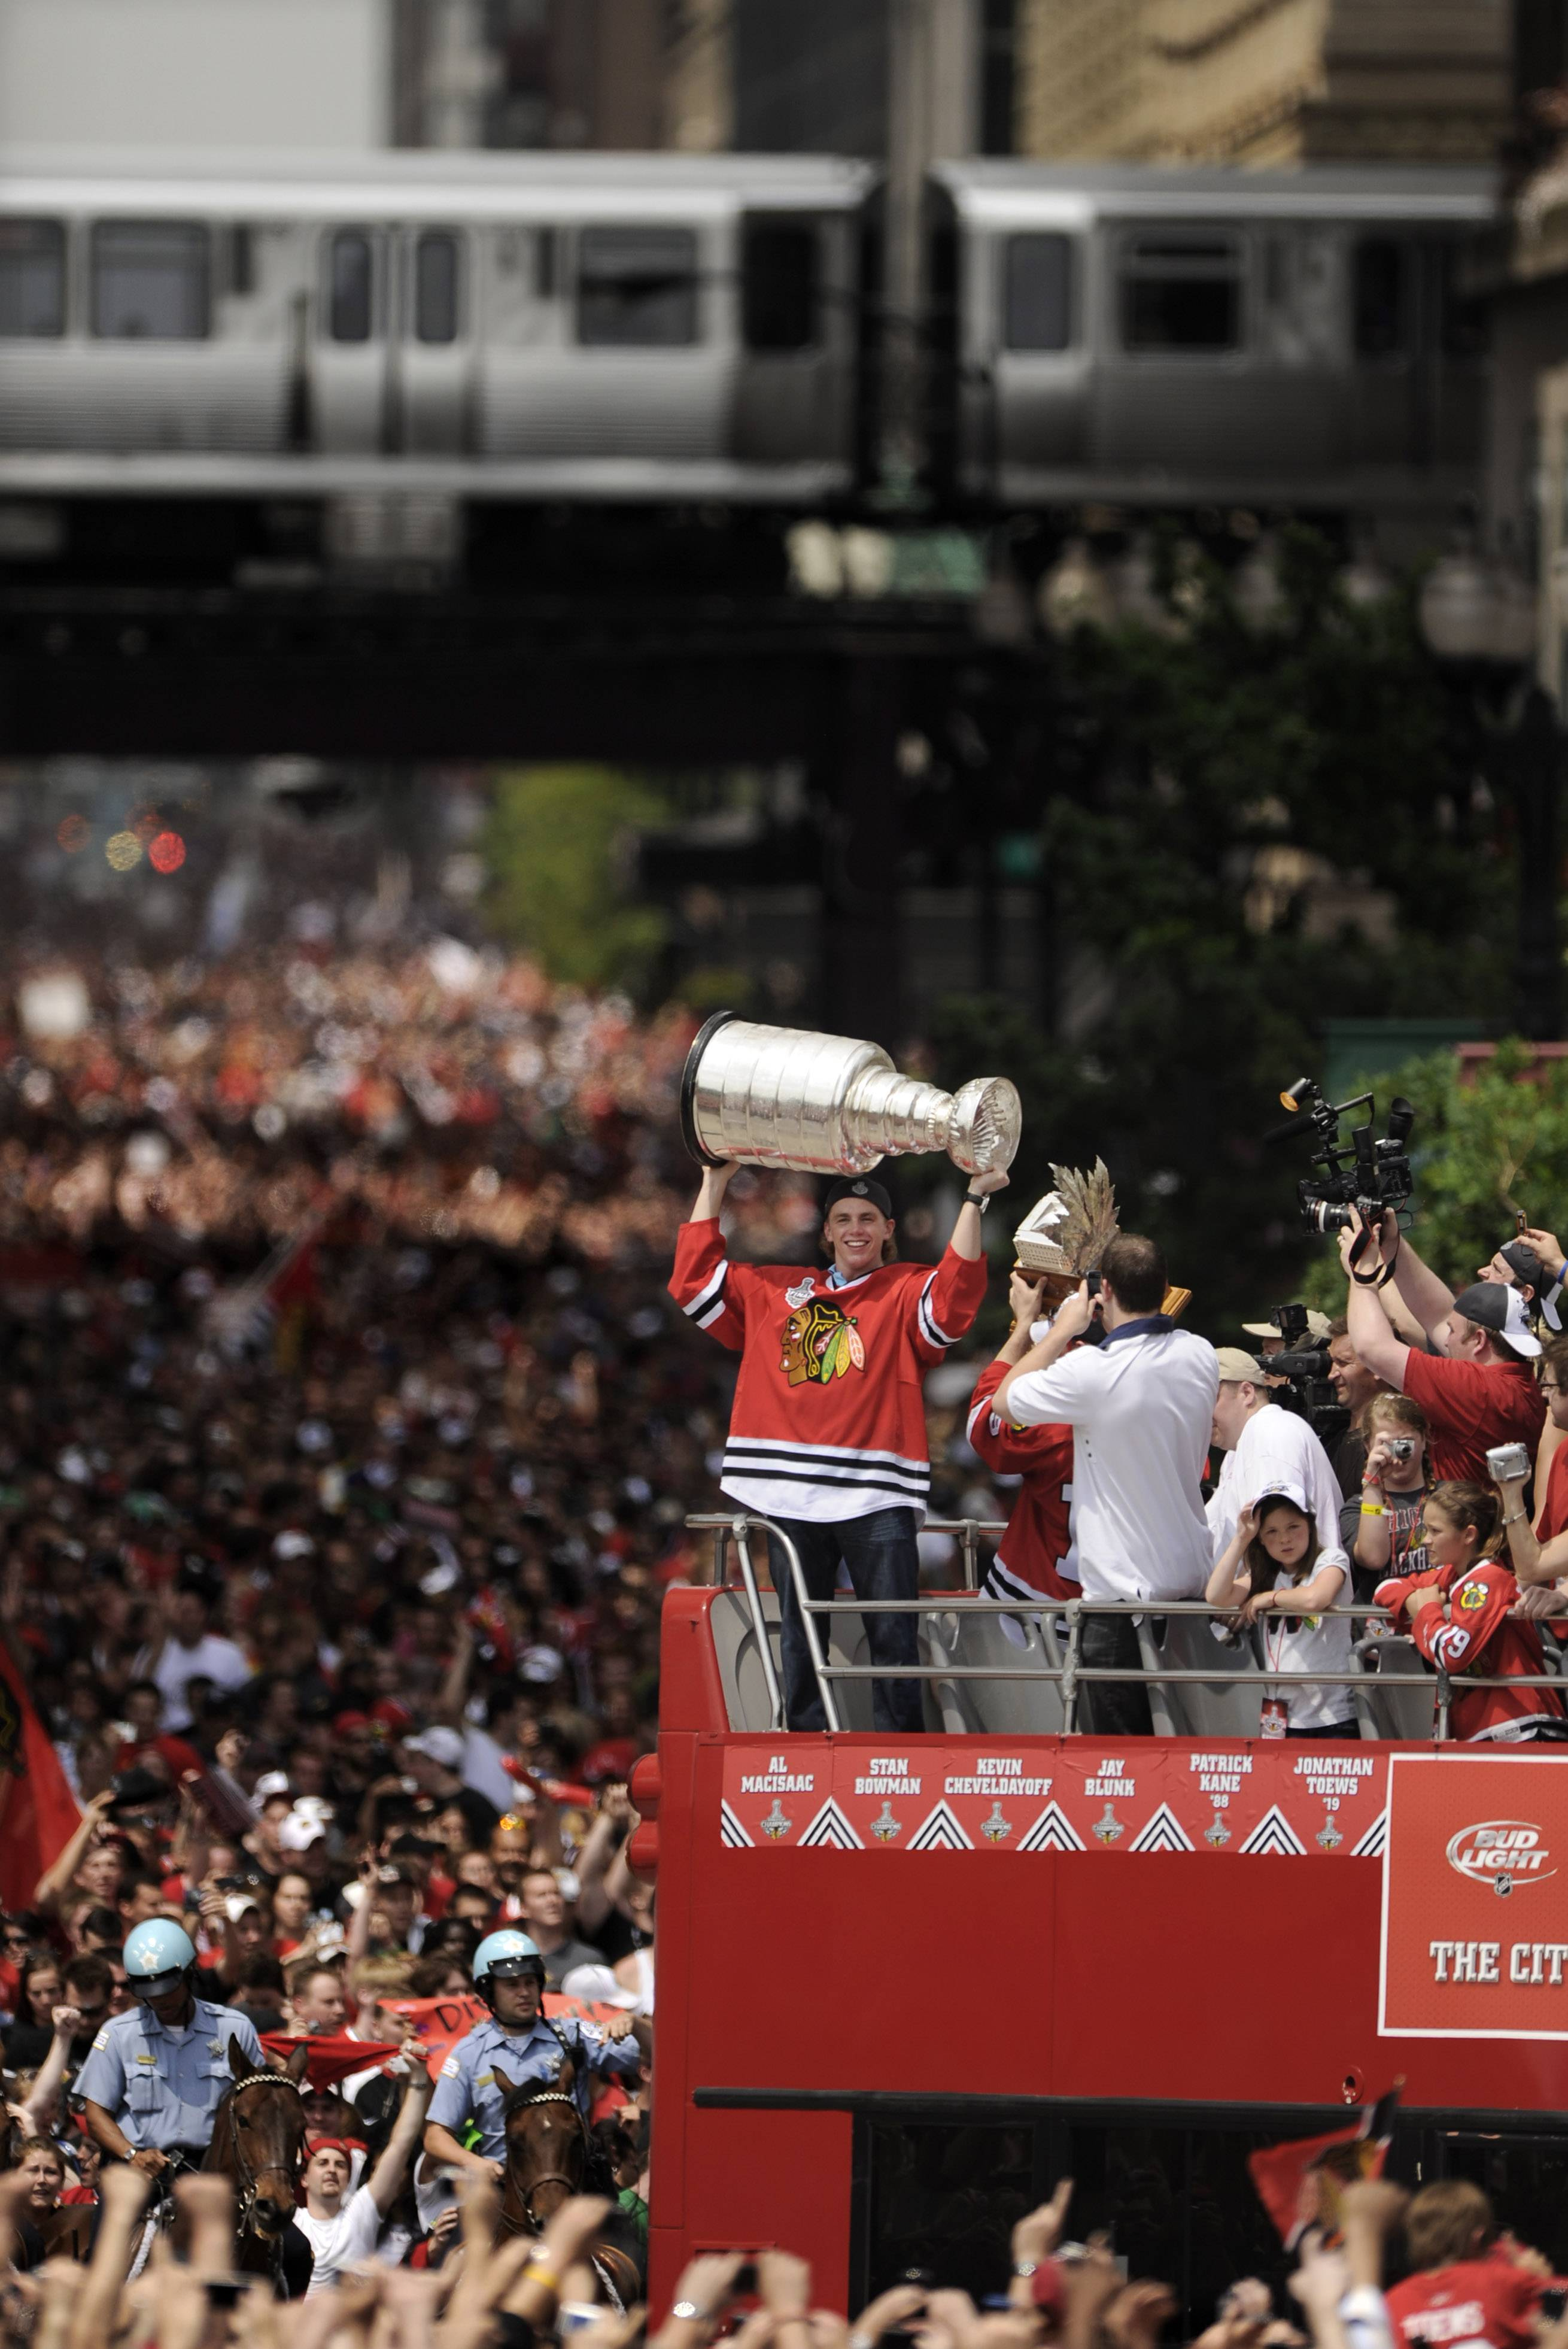 Parade for Blackhawks Thursday. Will it be bigger than 2010, 2013?